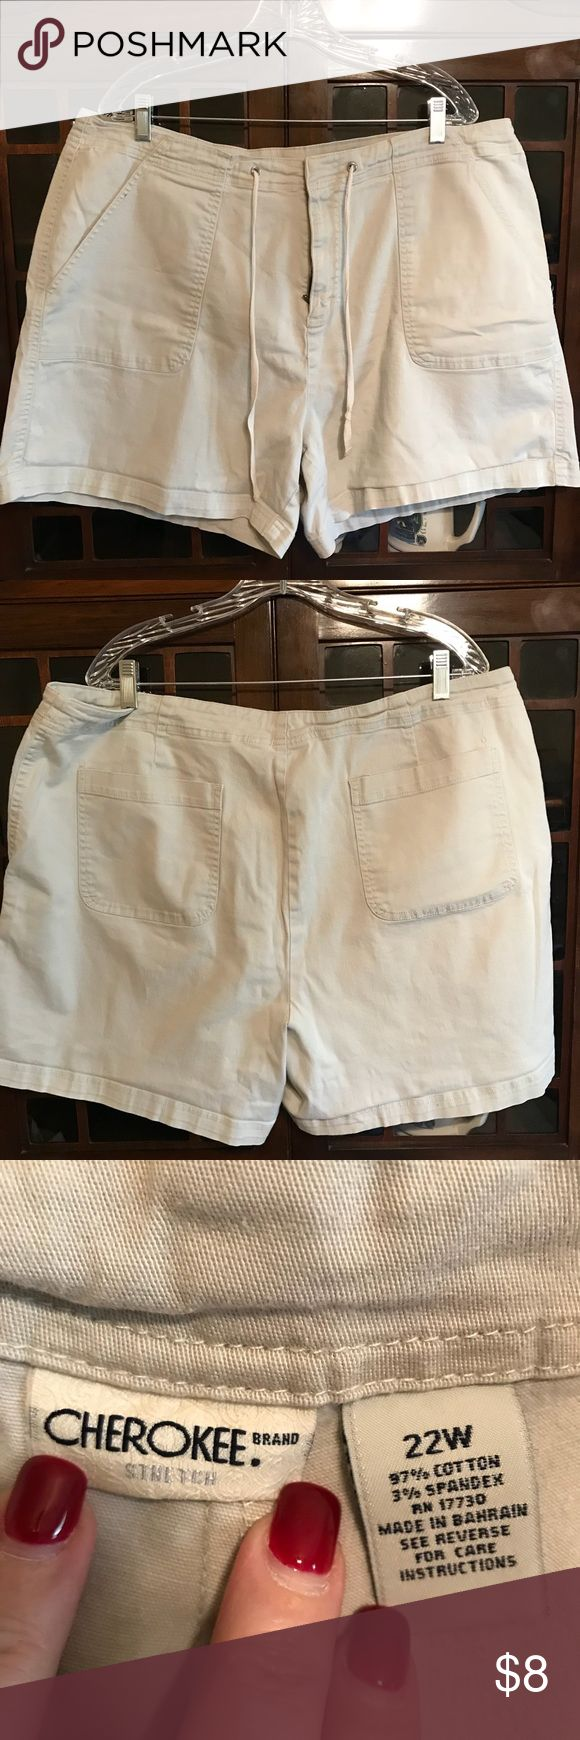 ☀️EUC Cherokee Khaki Women's Shorts☀️ These shorts are in like new condition with no rips or stains.  They are size 22W.  If you have any questions please ask before purchase.  Thank you for browsing my closet. Cherokee Shorts